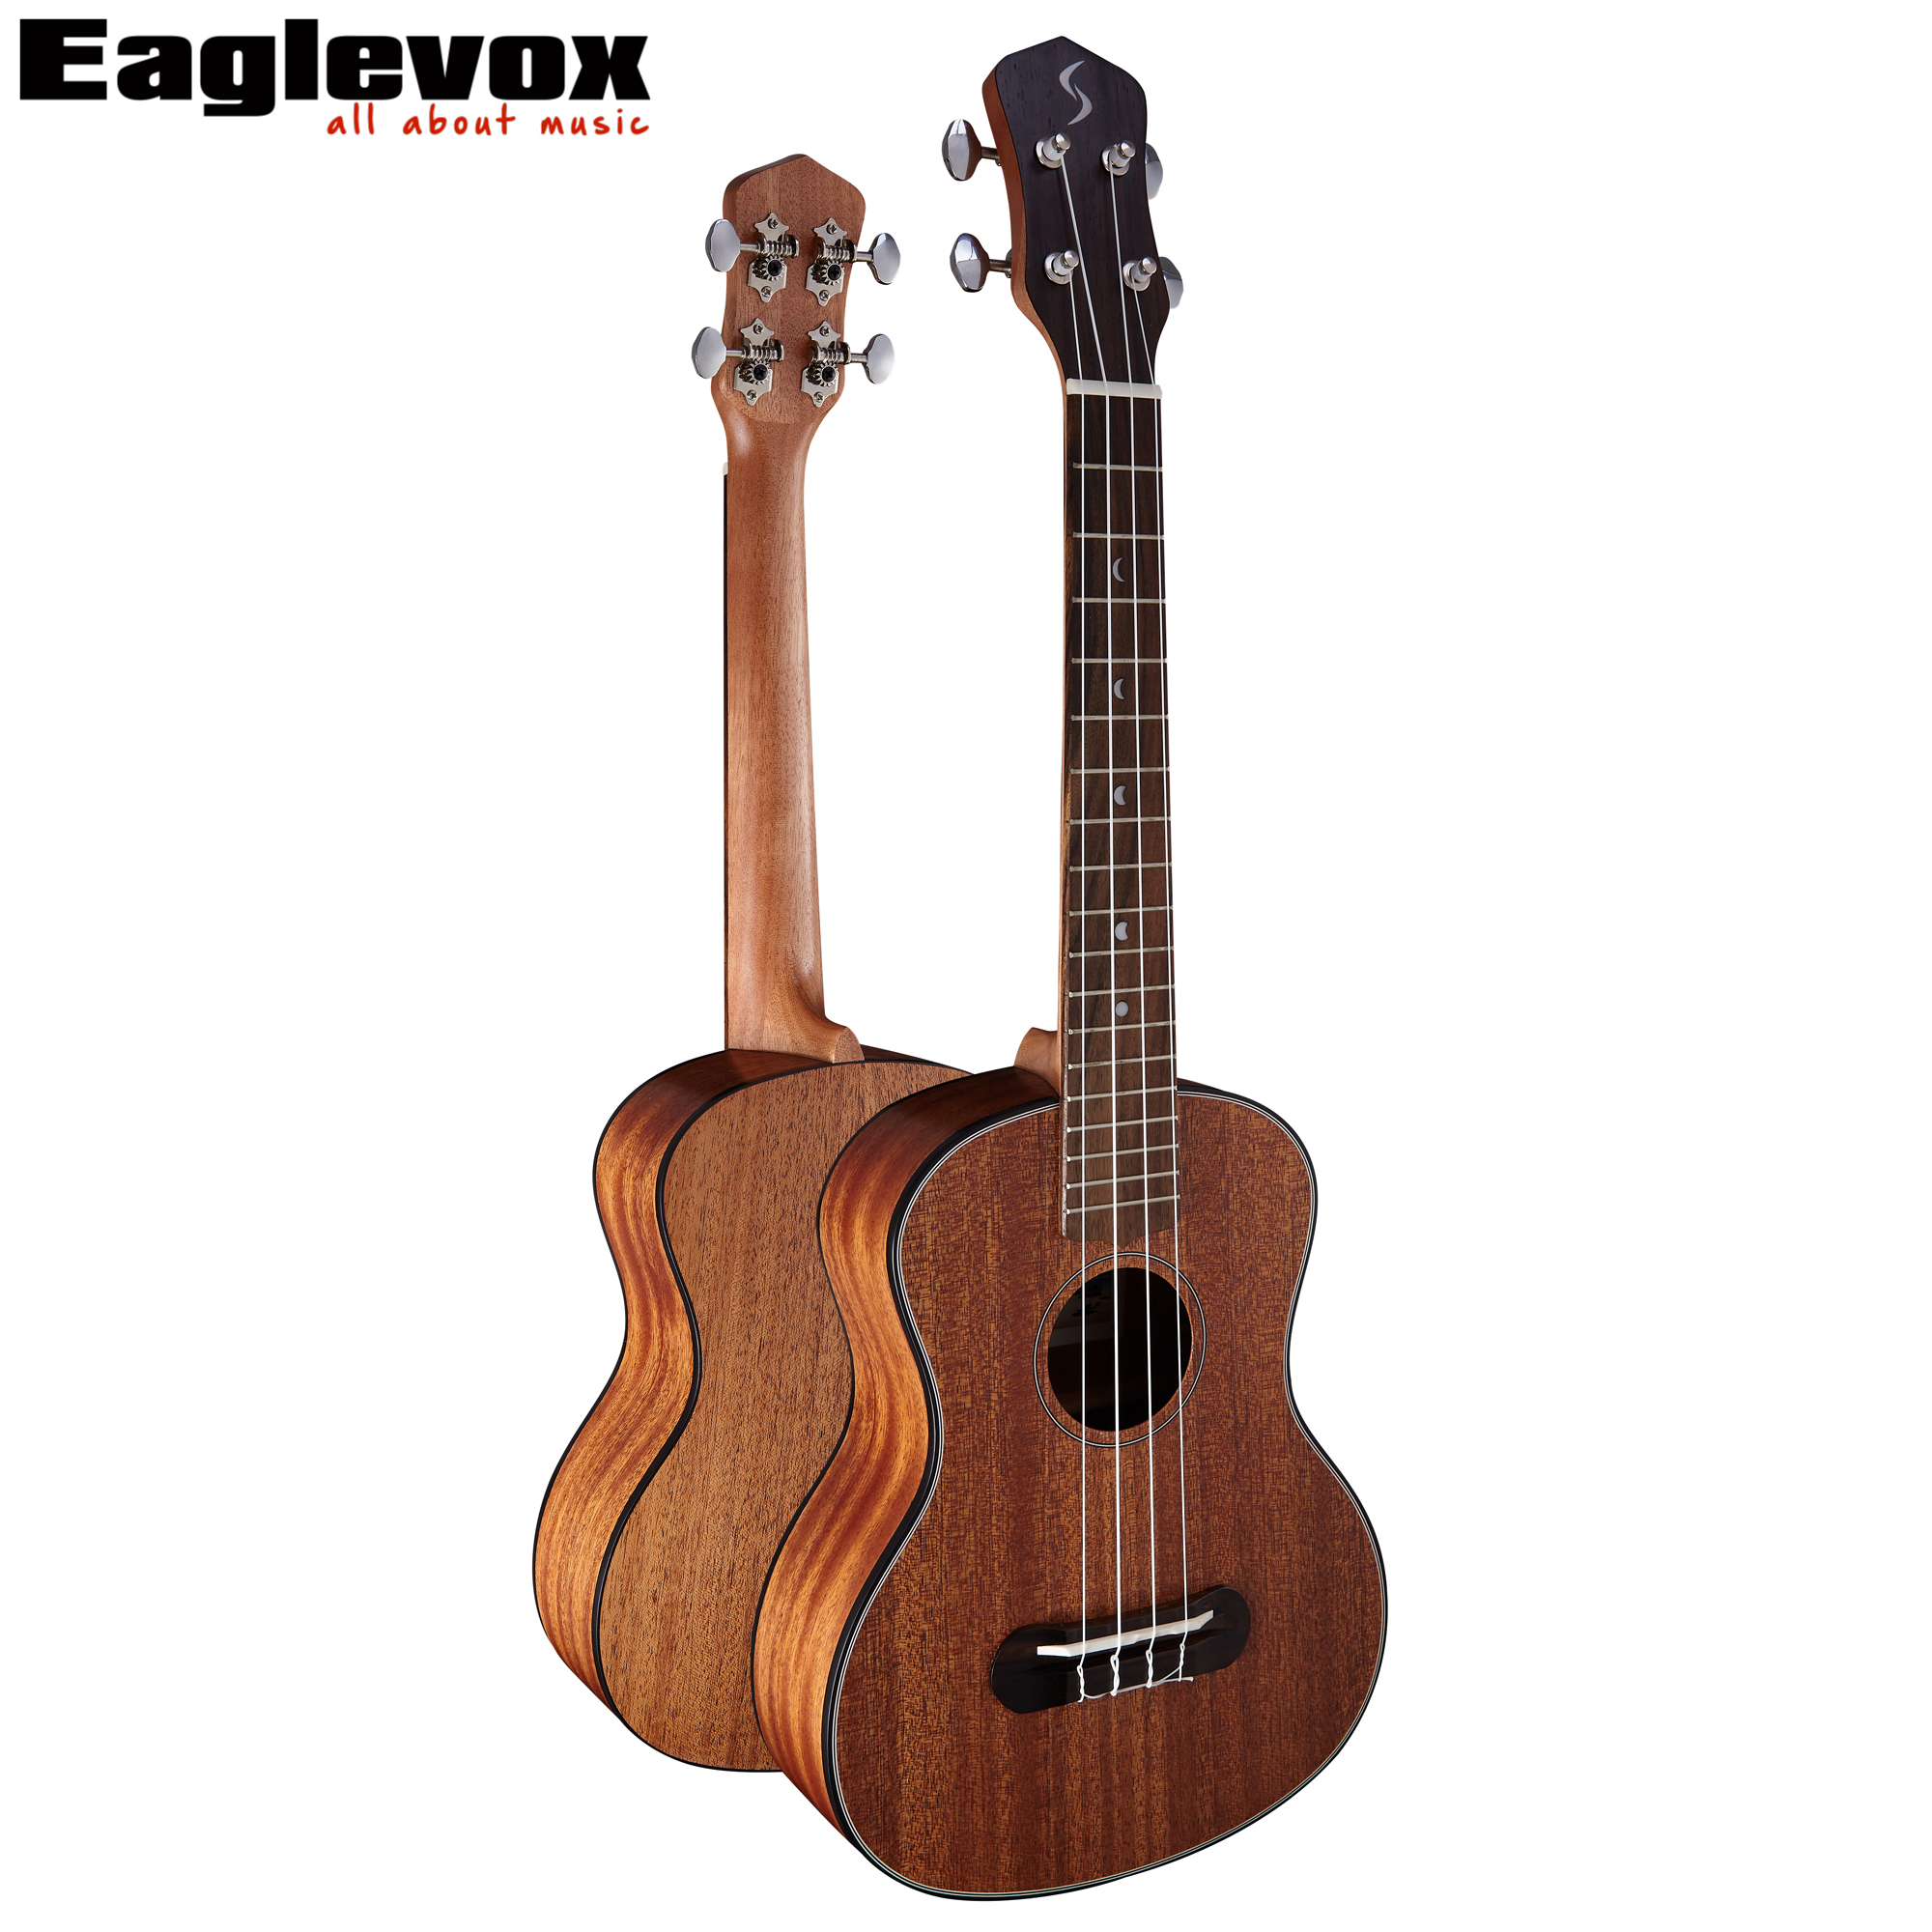 Lettu Tenor Ukulele 26 inch uke 18 Fret U-D1 Rosewood Fingerboard Mahogany Top Back Side U-D1 neck and fretboard fingerboard for 26 inch tenor ukulele hawaii guitar parts maple and rosewood 18 fret